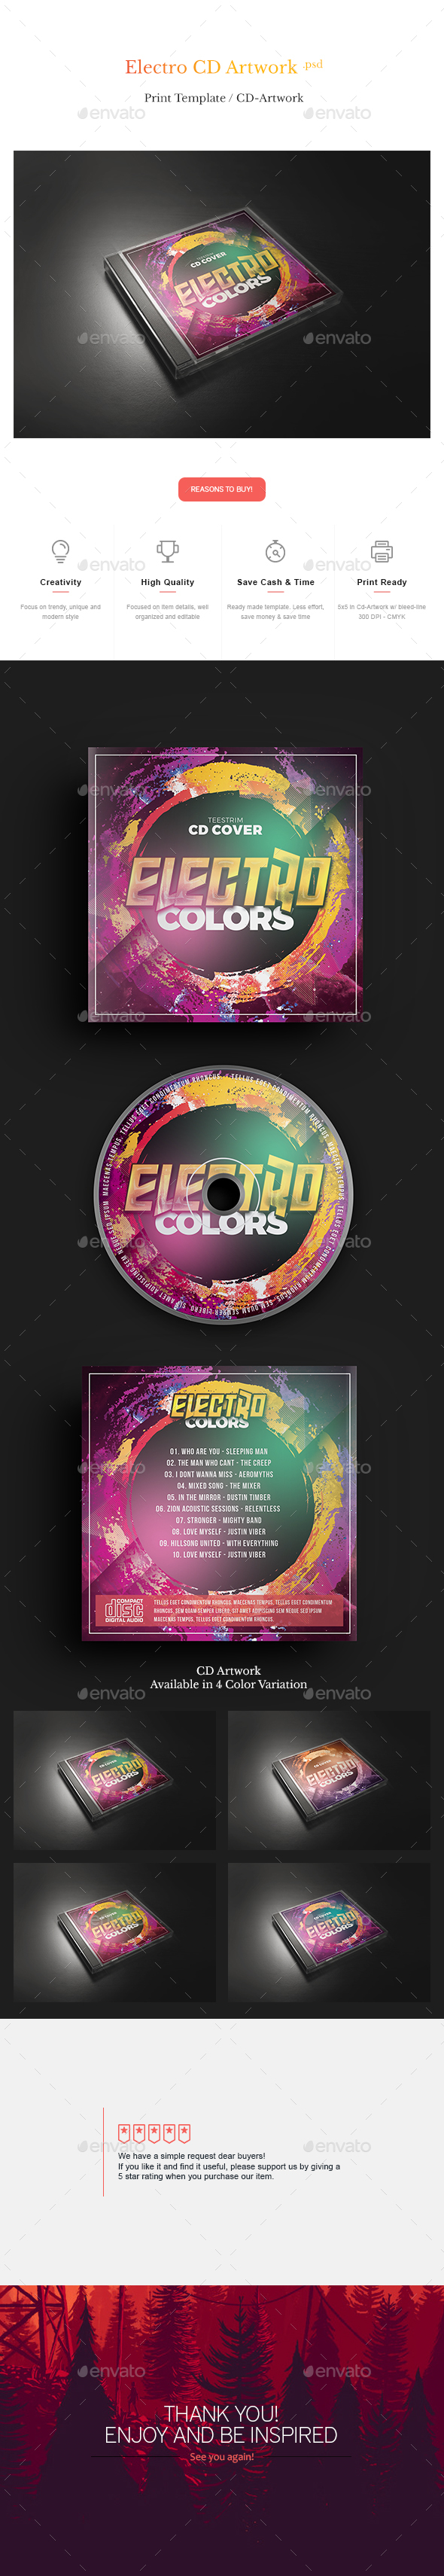 Electro Colors - CD Template - CD & DVD Artwork Print Templates